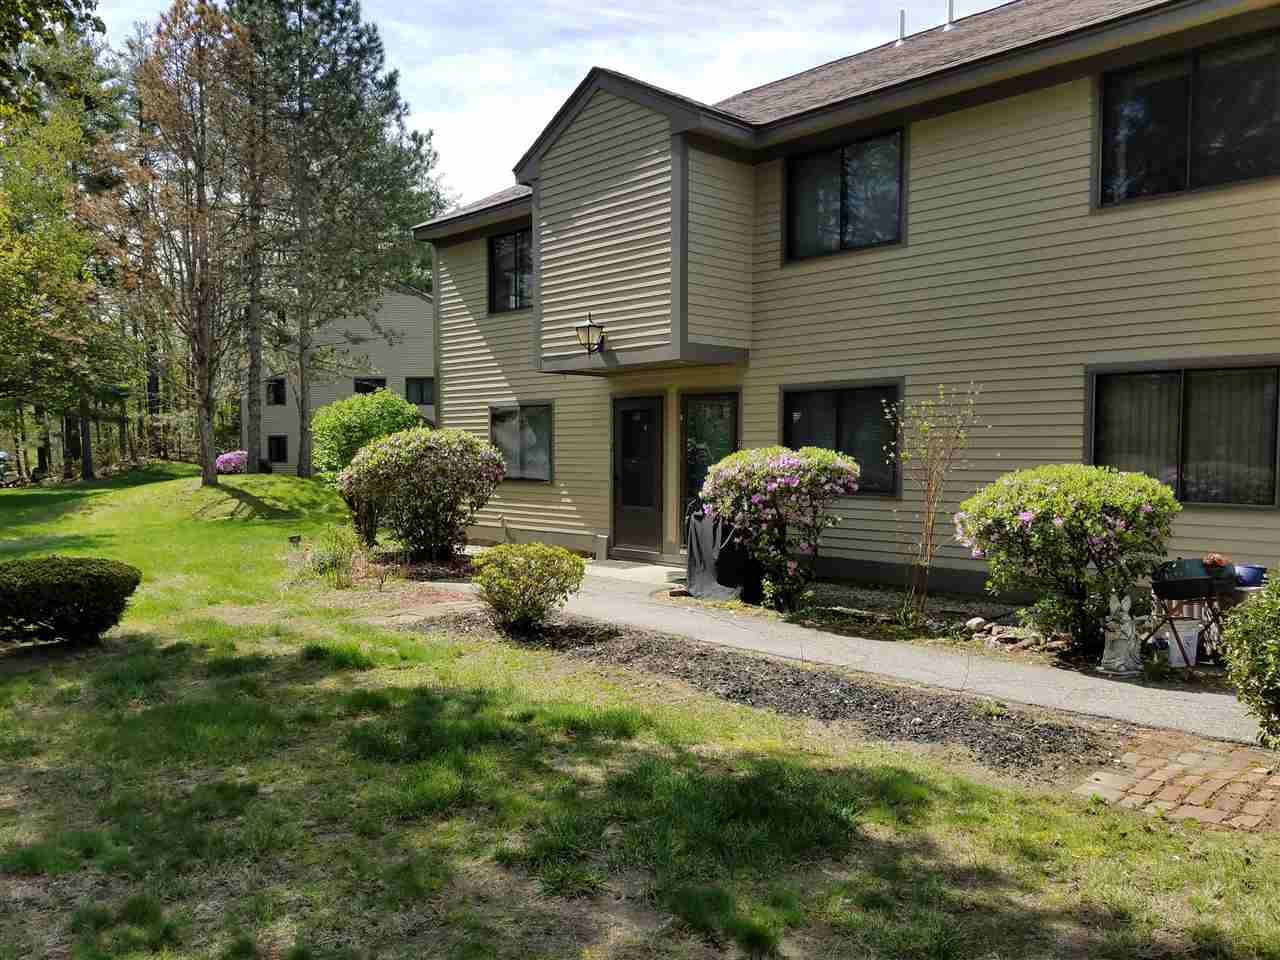 image of Allenstown NH Condo | sq.ft. 920